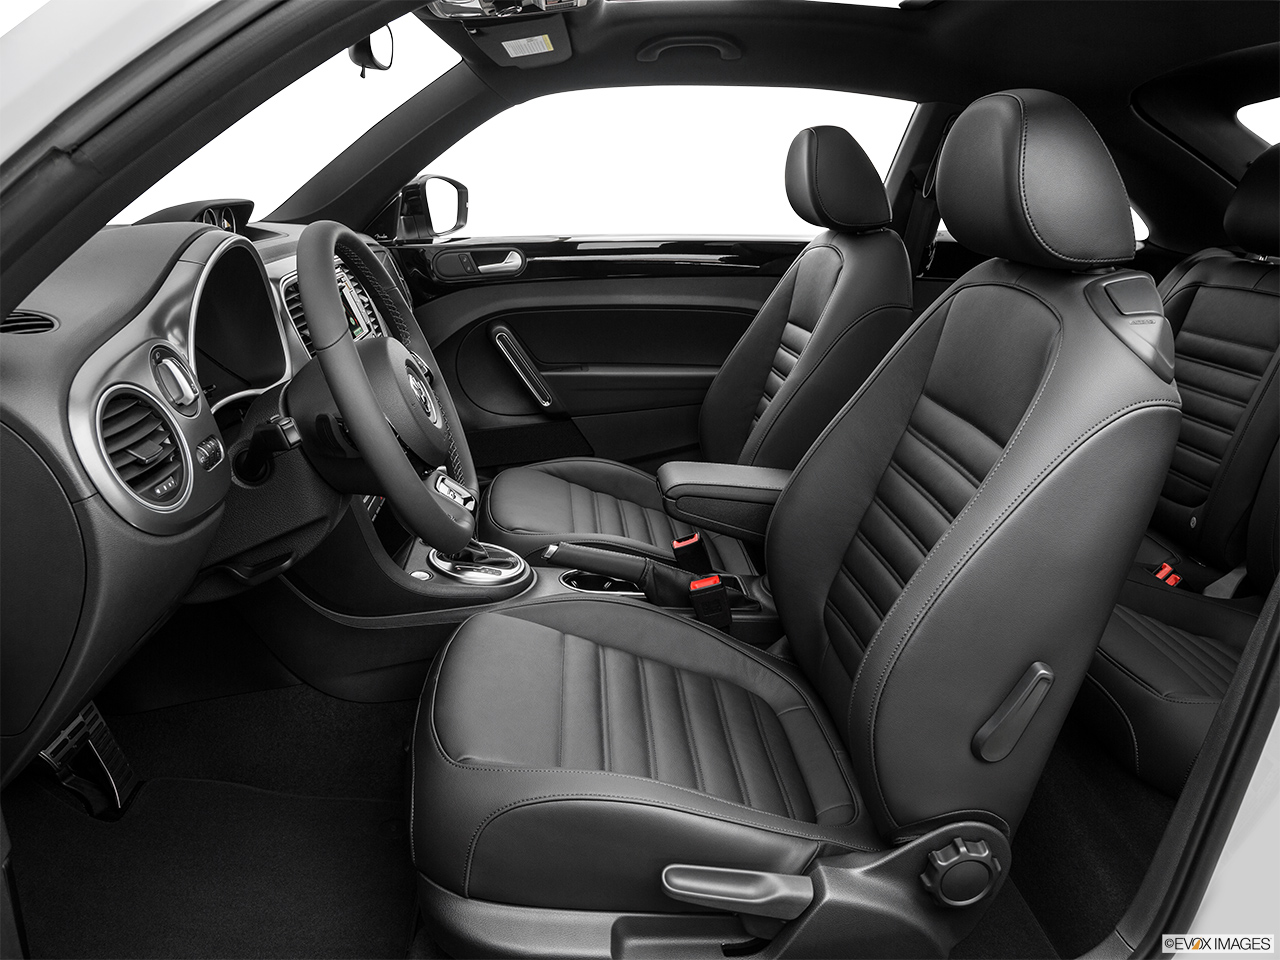 Vw leather driving gloves - 2015 Volkswagen Beetle Coupe 2 Door Dsg 2 0t R Line Front Seats From